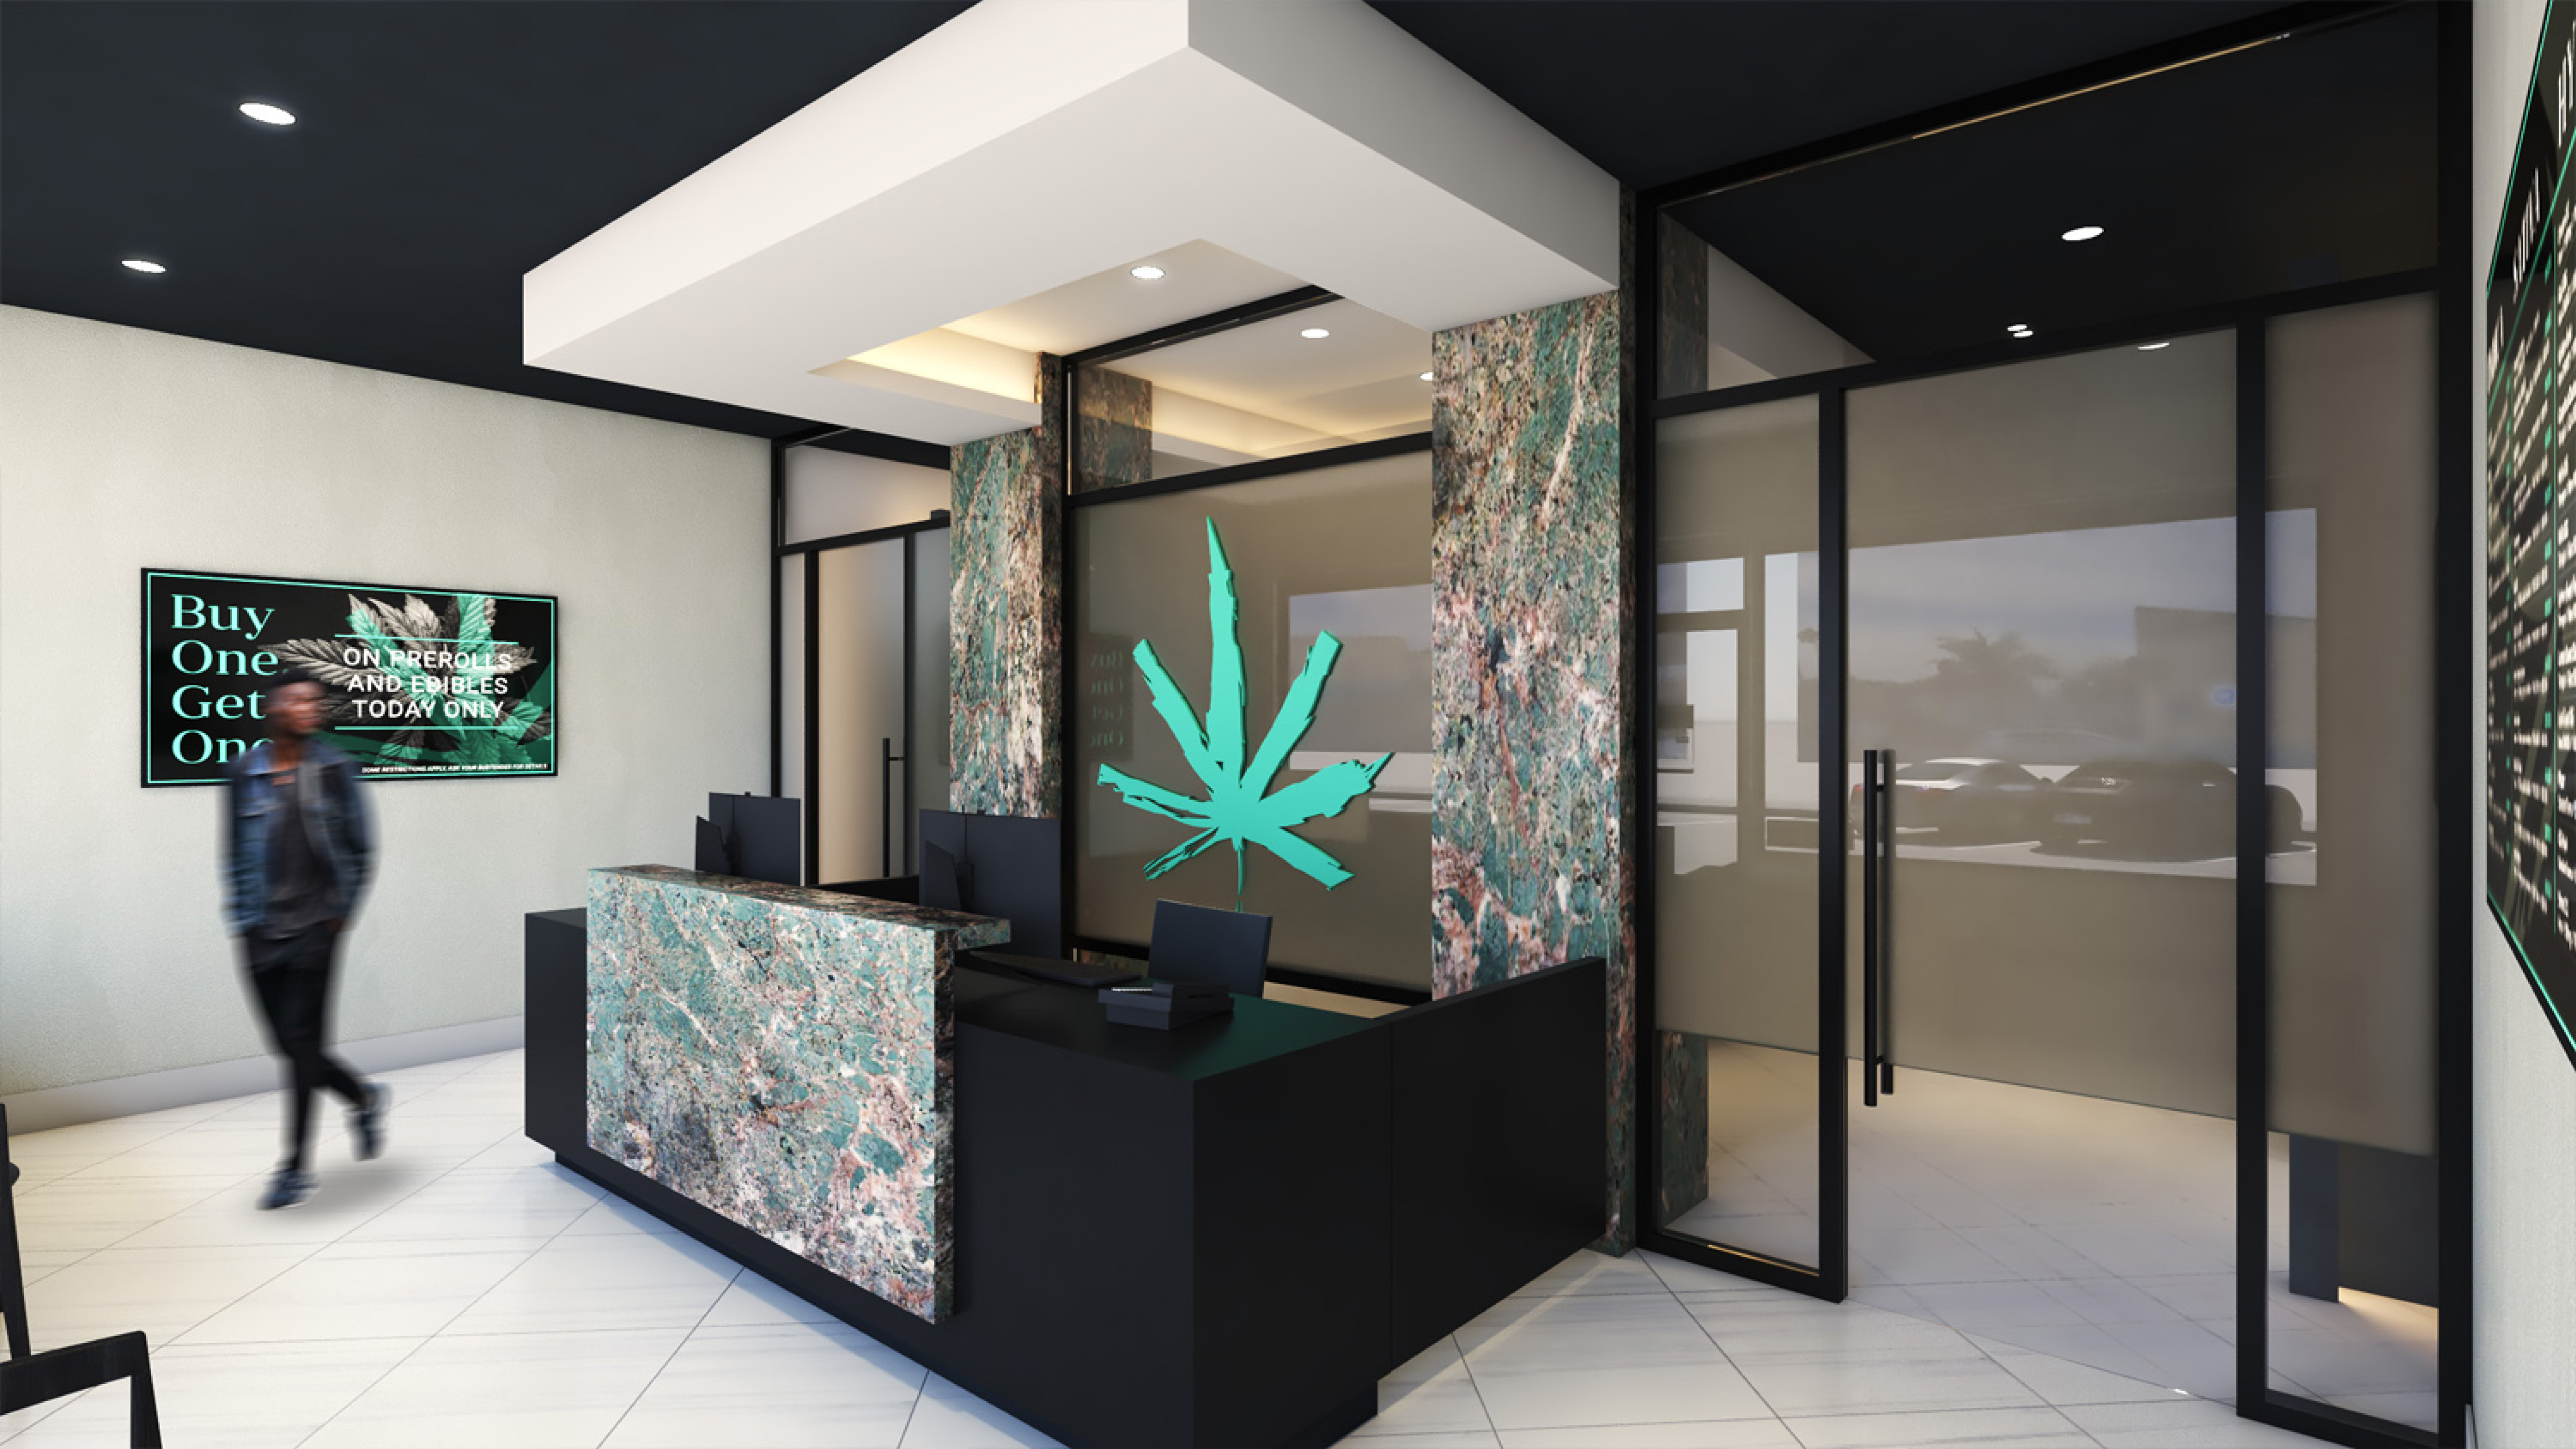 Elevate Dispensary - Retail Design by High Road Studio - Coming Soon